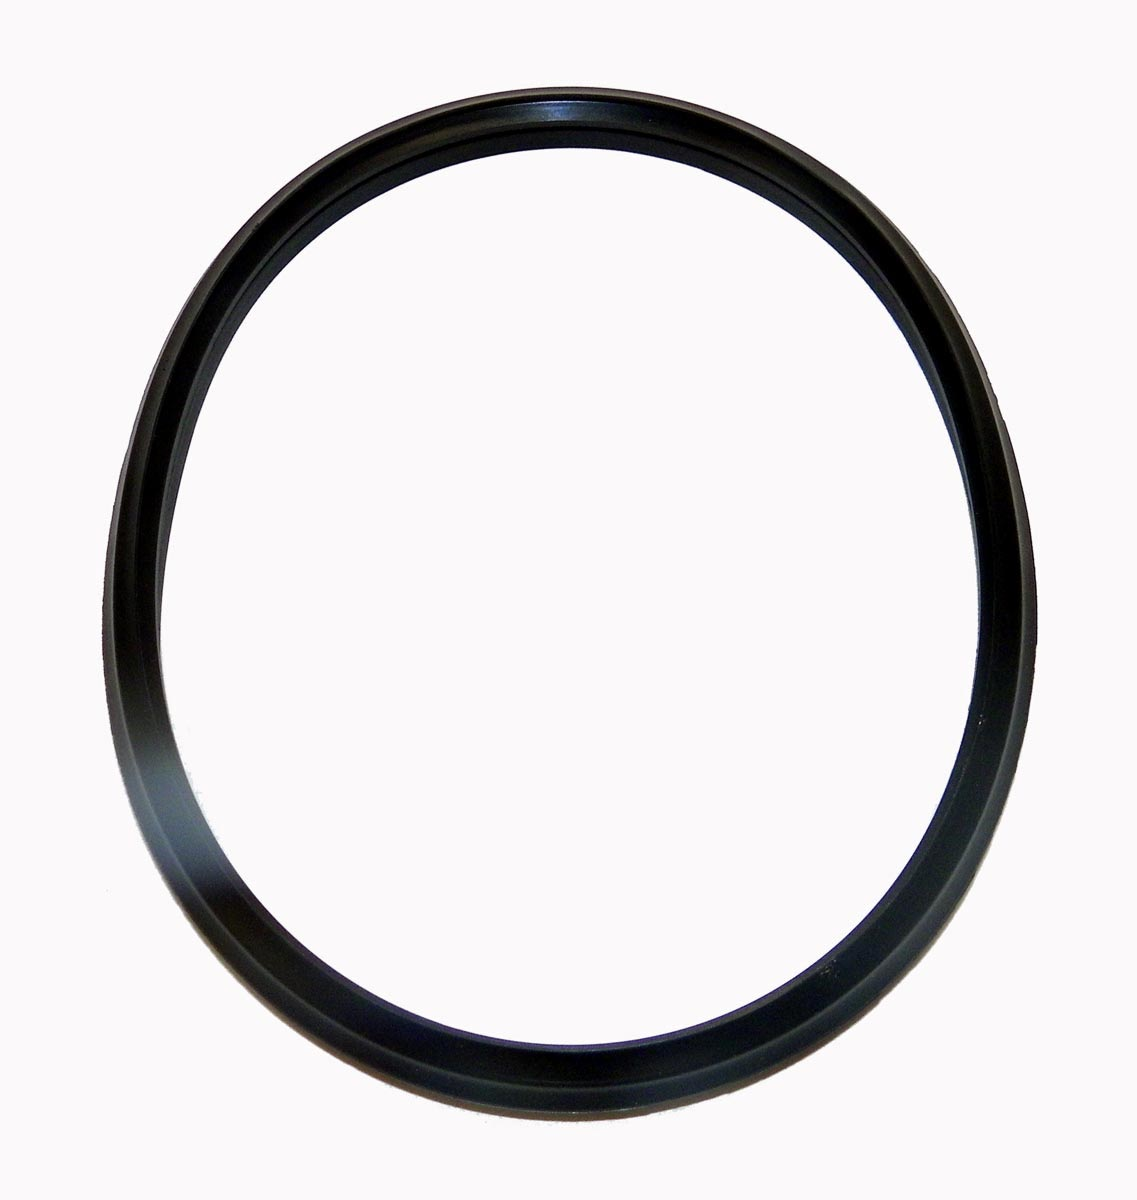 Seadoo Jet Pump Duct Seal 2003-17